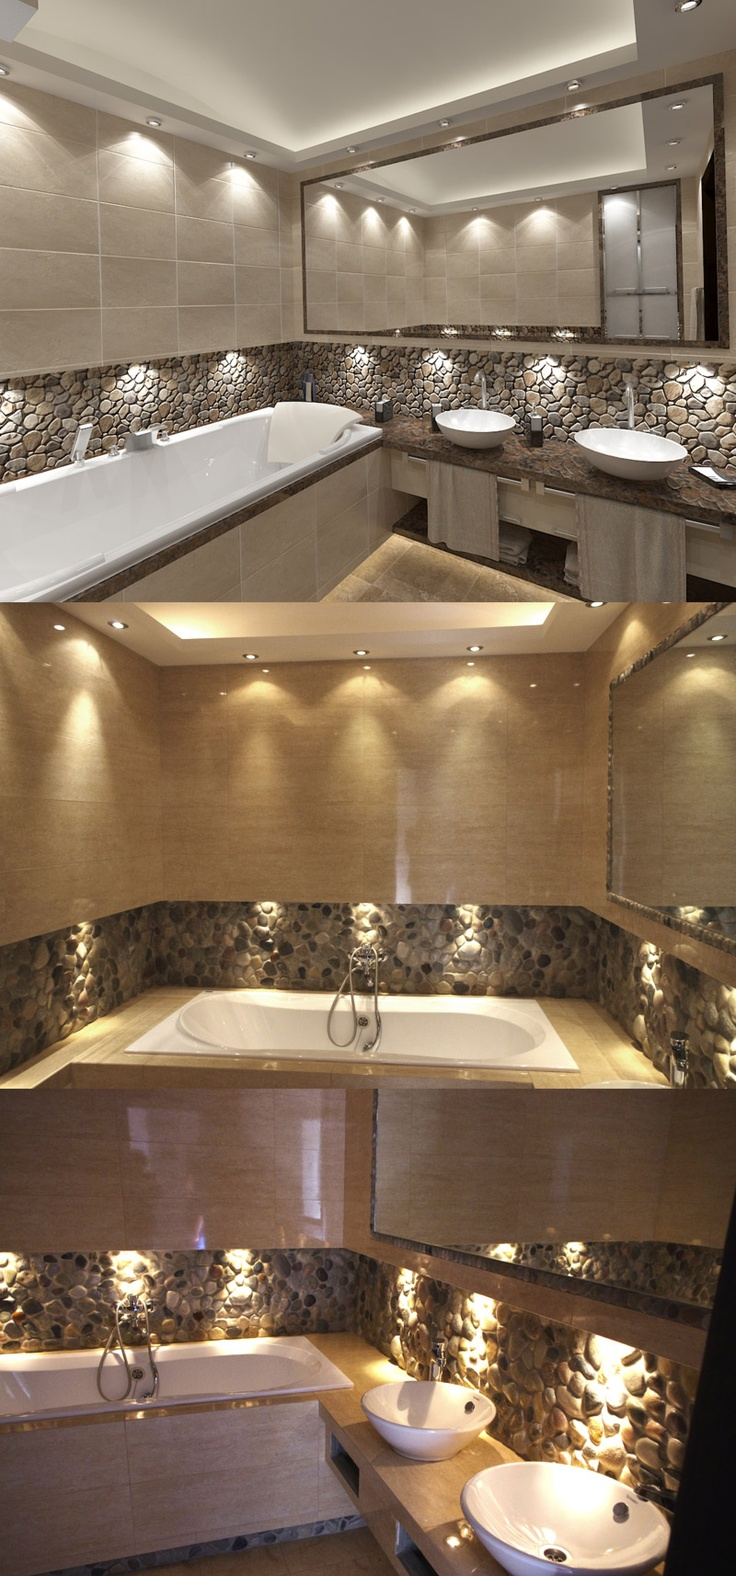 30 Glowing Ceiling Designs With Hidden Led Lighting Fixtures - Stone backsplash with hidden lighting in bathroom